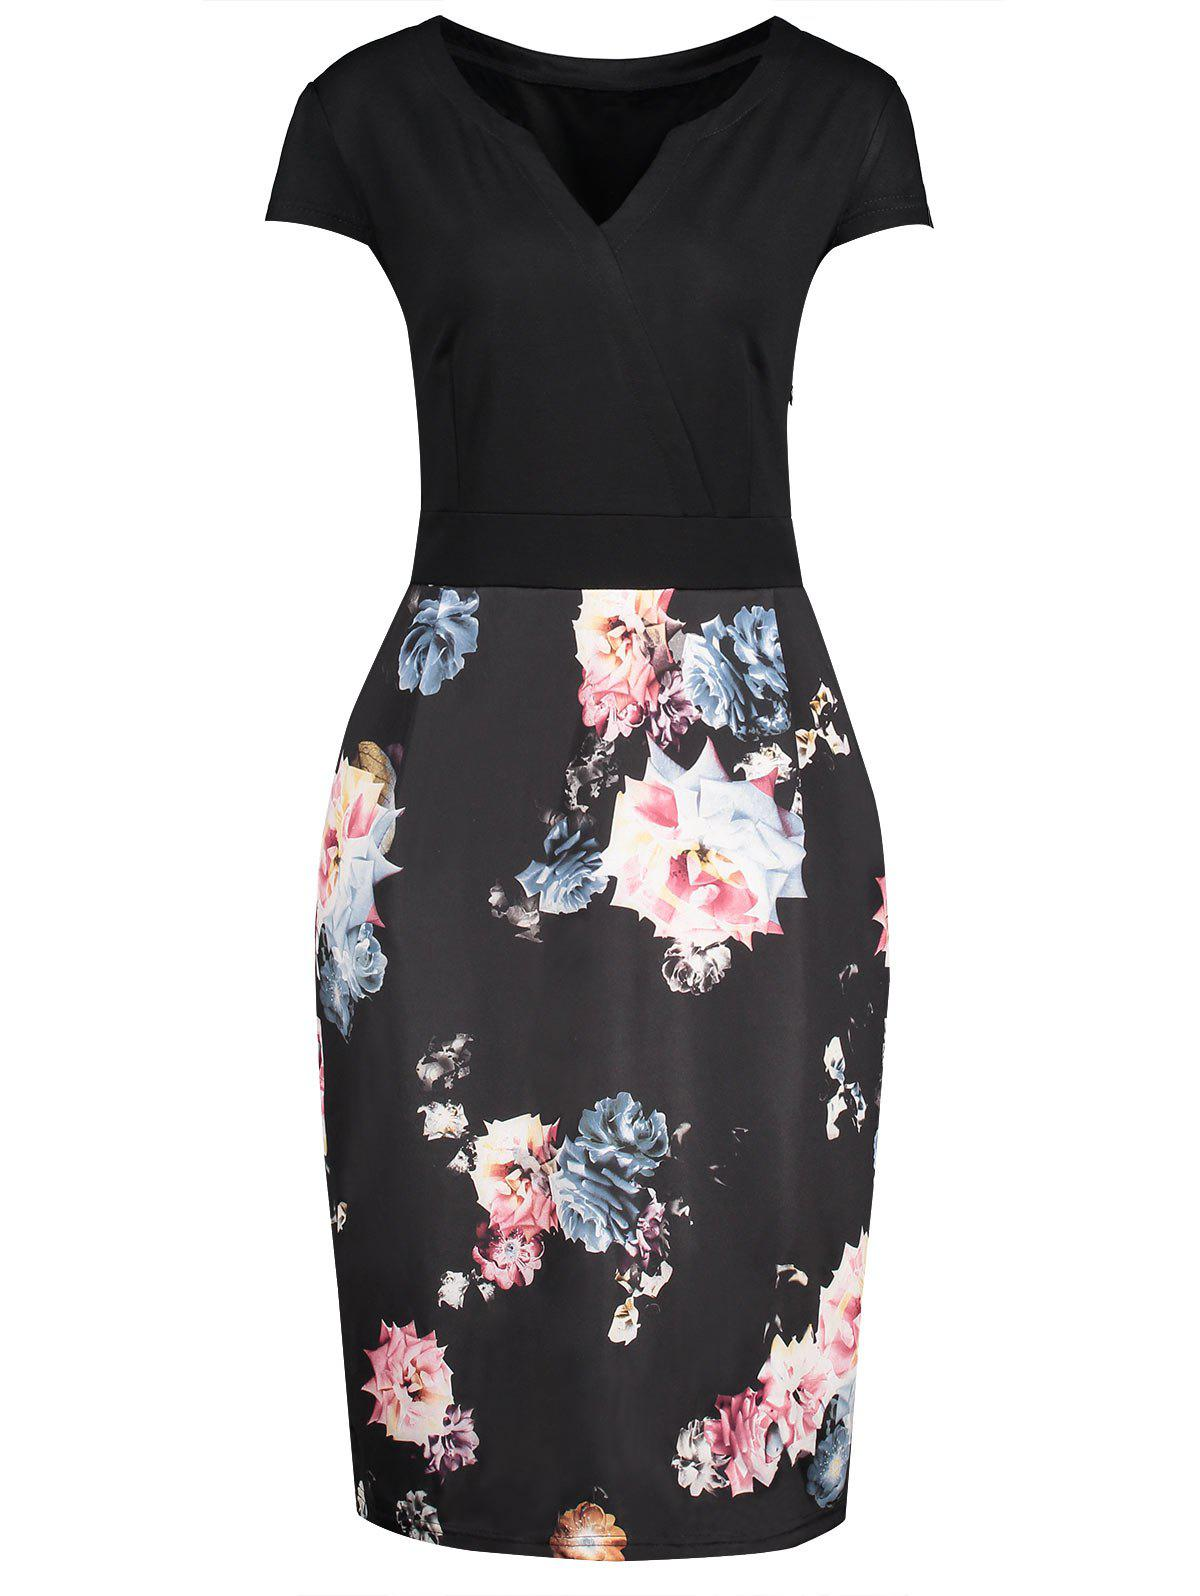 V Neck Floral Print Plus Size Bodycon Dress - BLACK 5XL